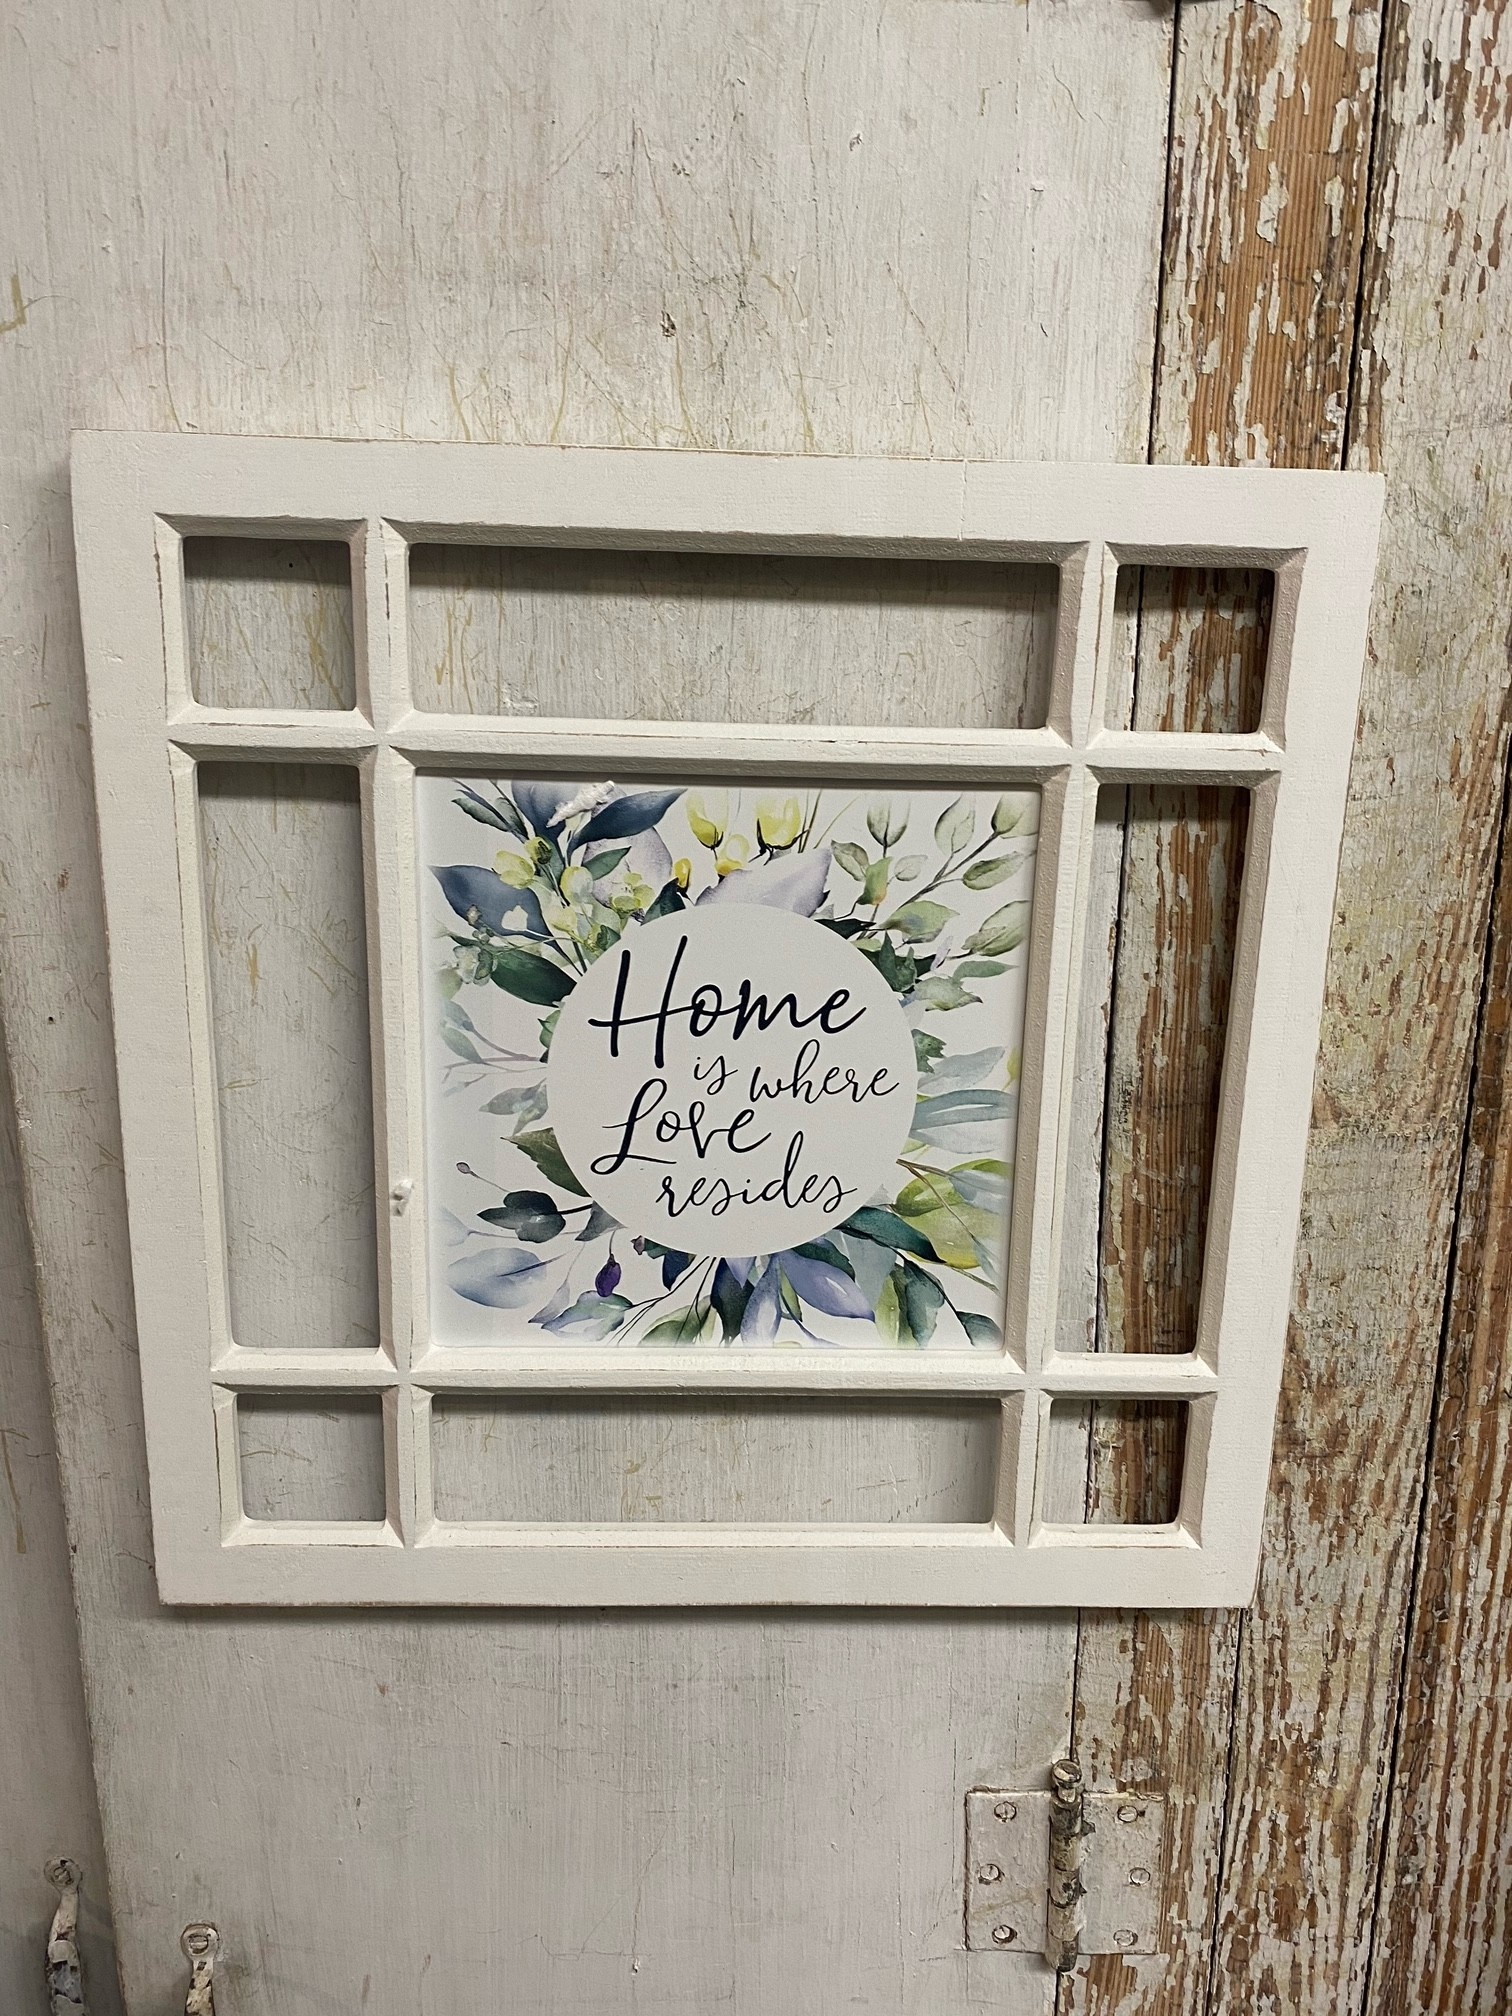 Framed Square Inspirational Wall Art (2-Styles)